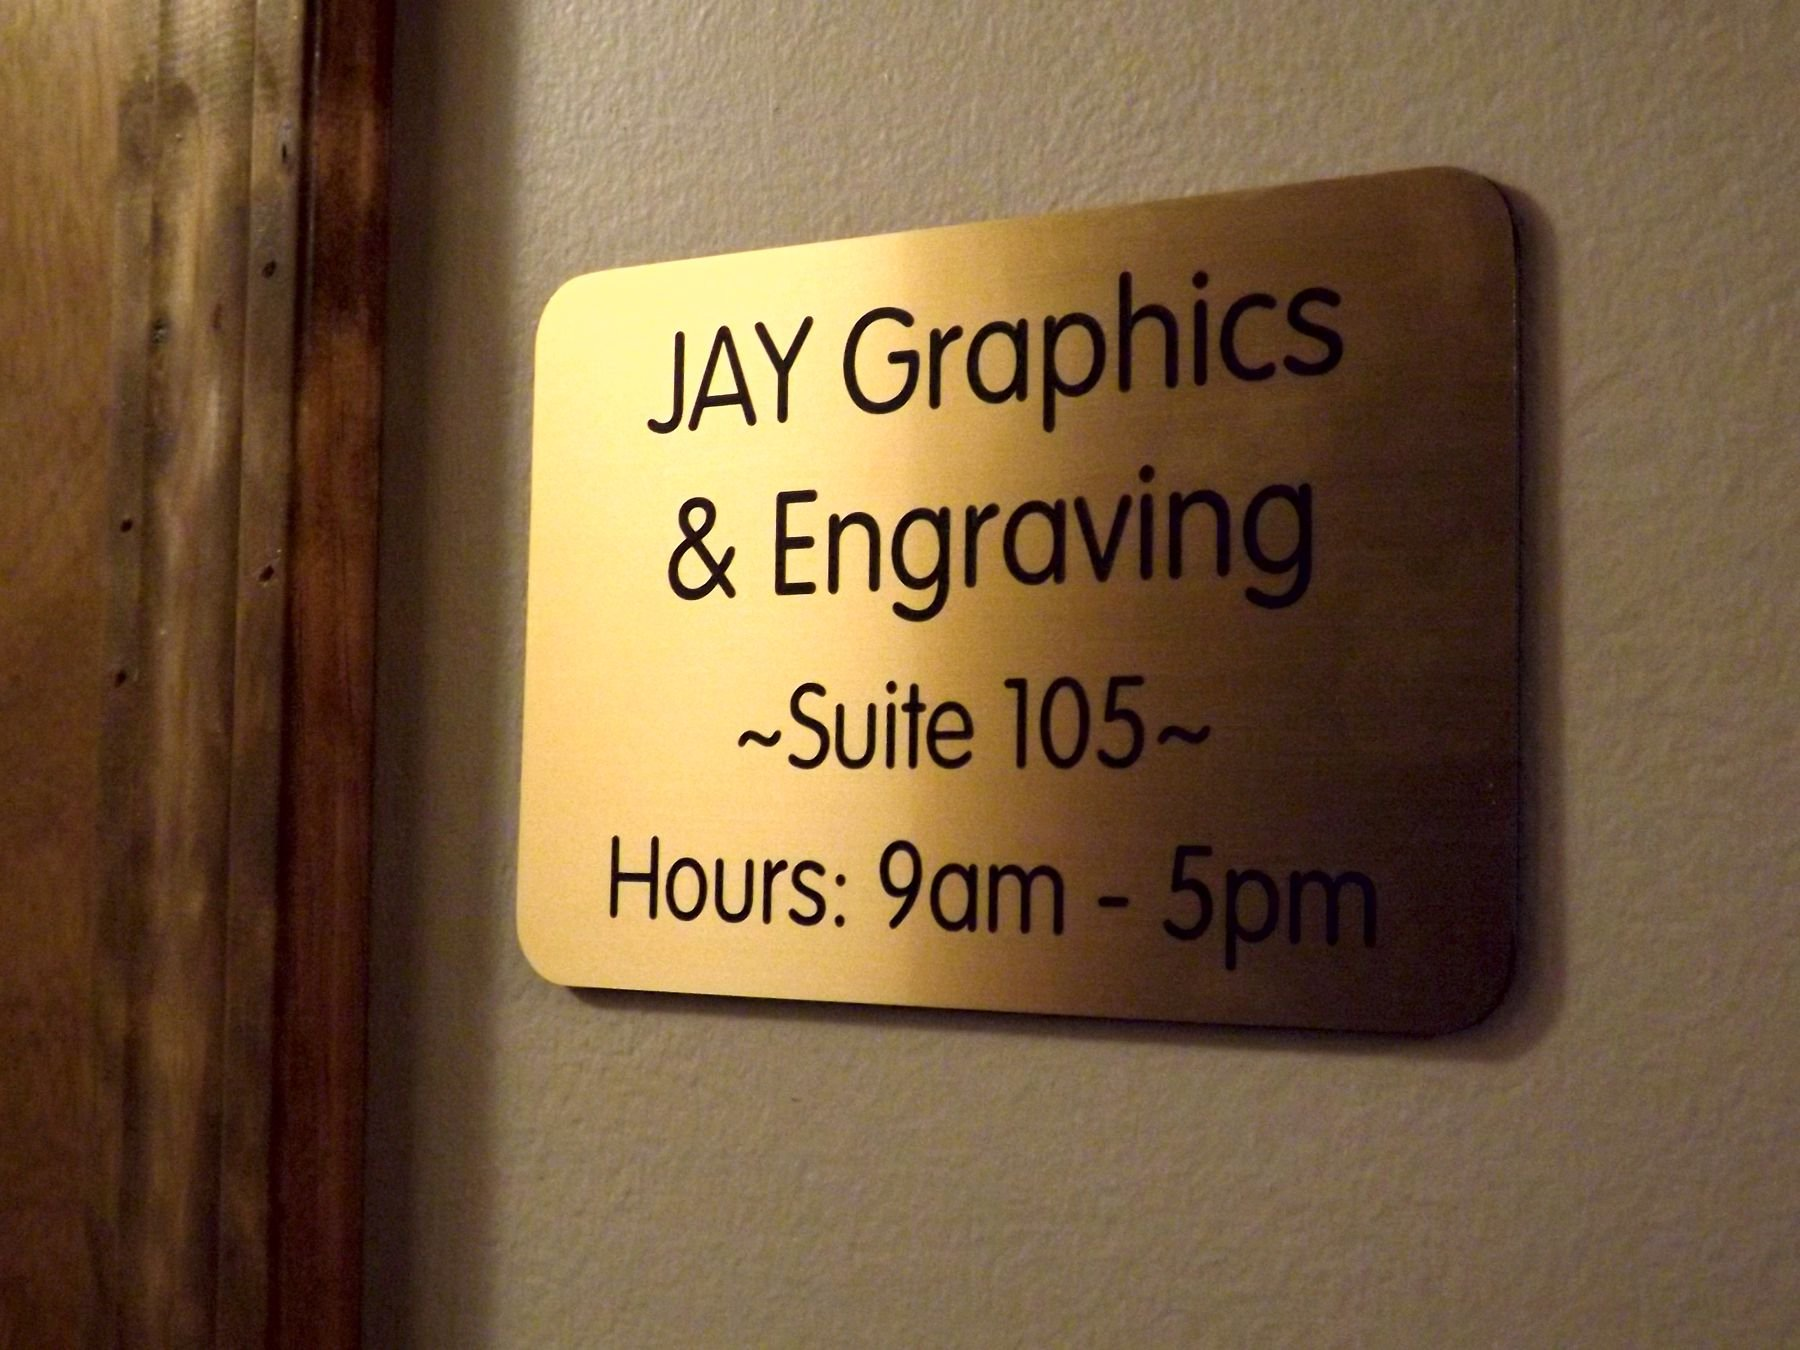 Custom Engraved 4x6 Brushed Gold w/ Black Lettering Door Suite Wall Sign | Name Plate | Personalized Wall Plaque | Business Doctor Law Firm Home Office Cafe Shop | Up to 4 Text Lines | Adhesive Backed